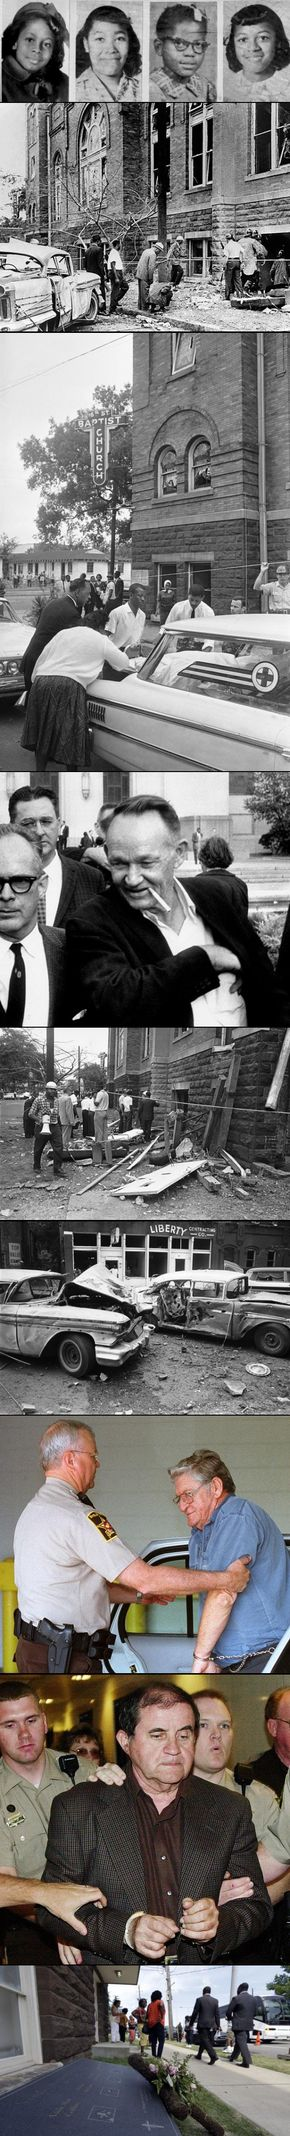 At 10:22 a.m. on Sunday, Sept. 19, 1963, as families arrived to attend services at the church, a thunderous explosion rang out from the basement. 19 sticks of dynamite were planted in the basement of the 16th Street Baptist Church. The blast killed 4 little girls & injured dozens more.Despite a national outcry for justice, - Birmingham, was a place where 50 other racially motivated bombings had gone unsolved over recent decades.